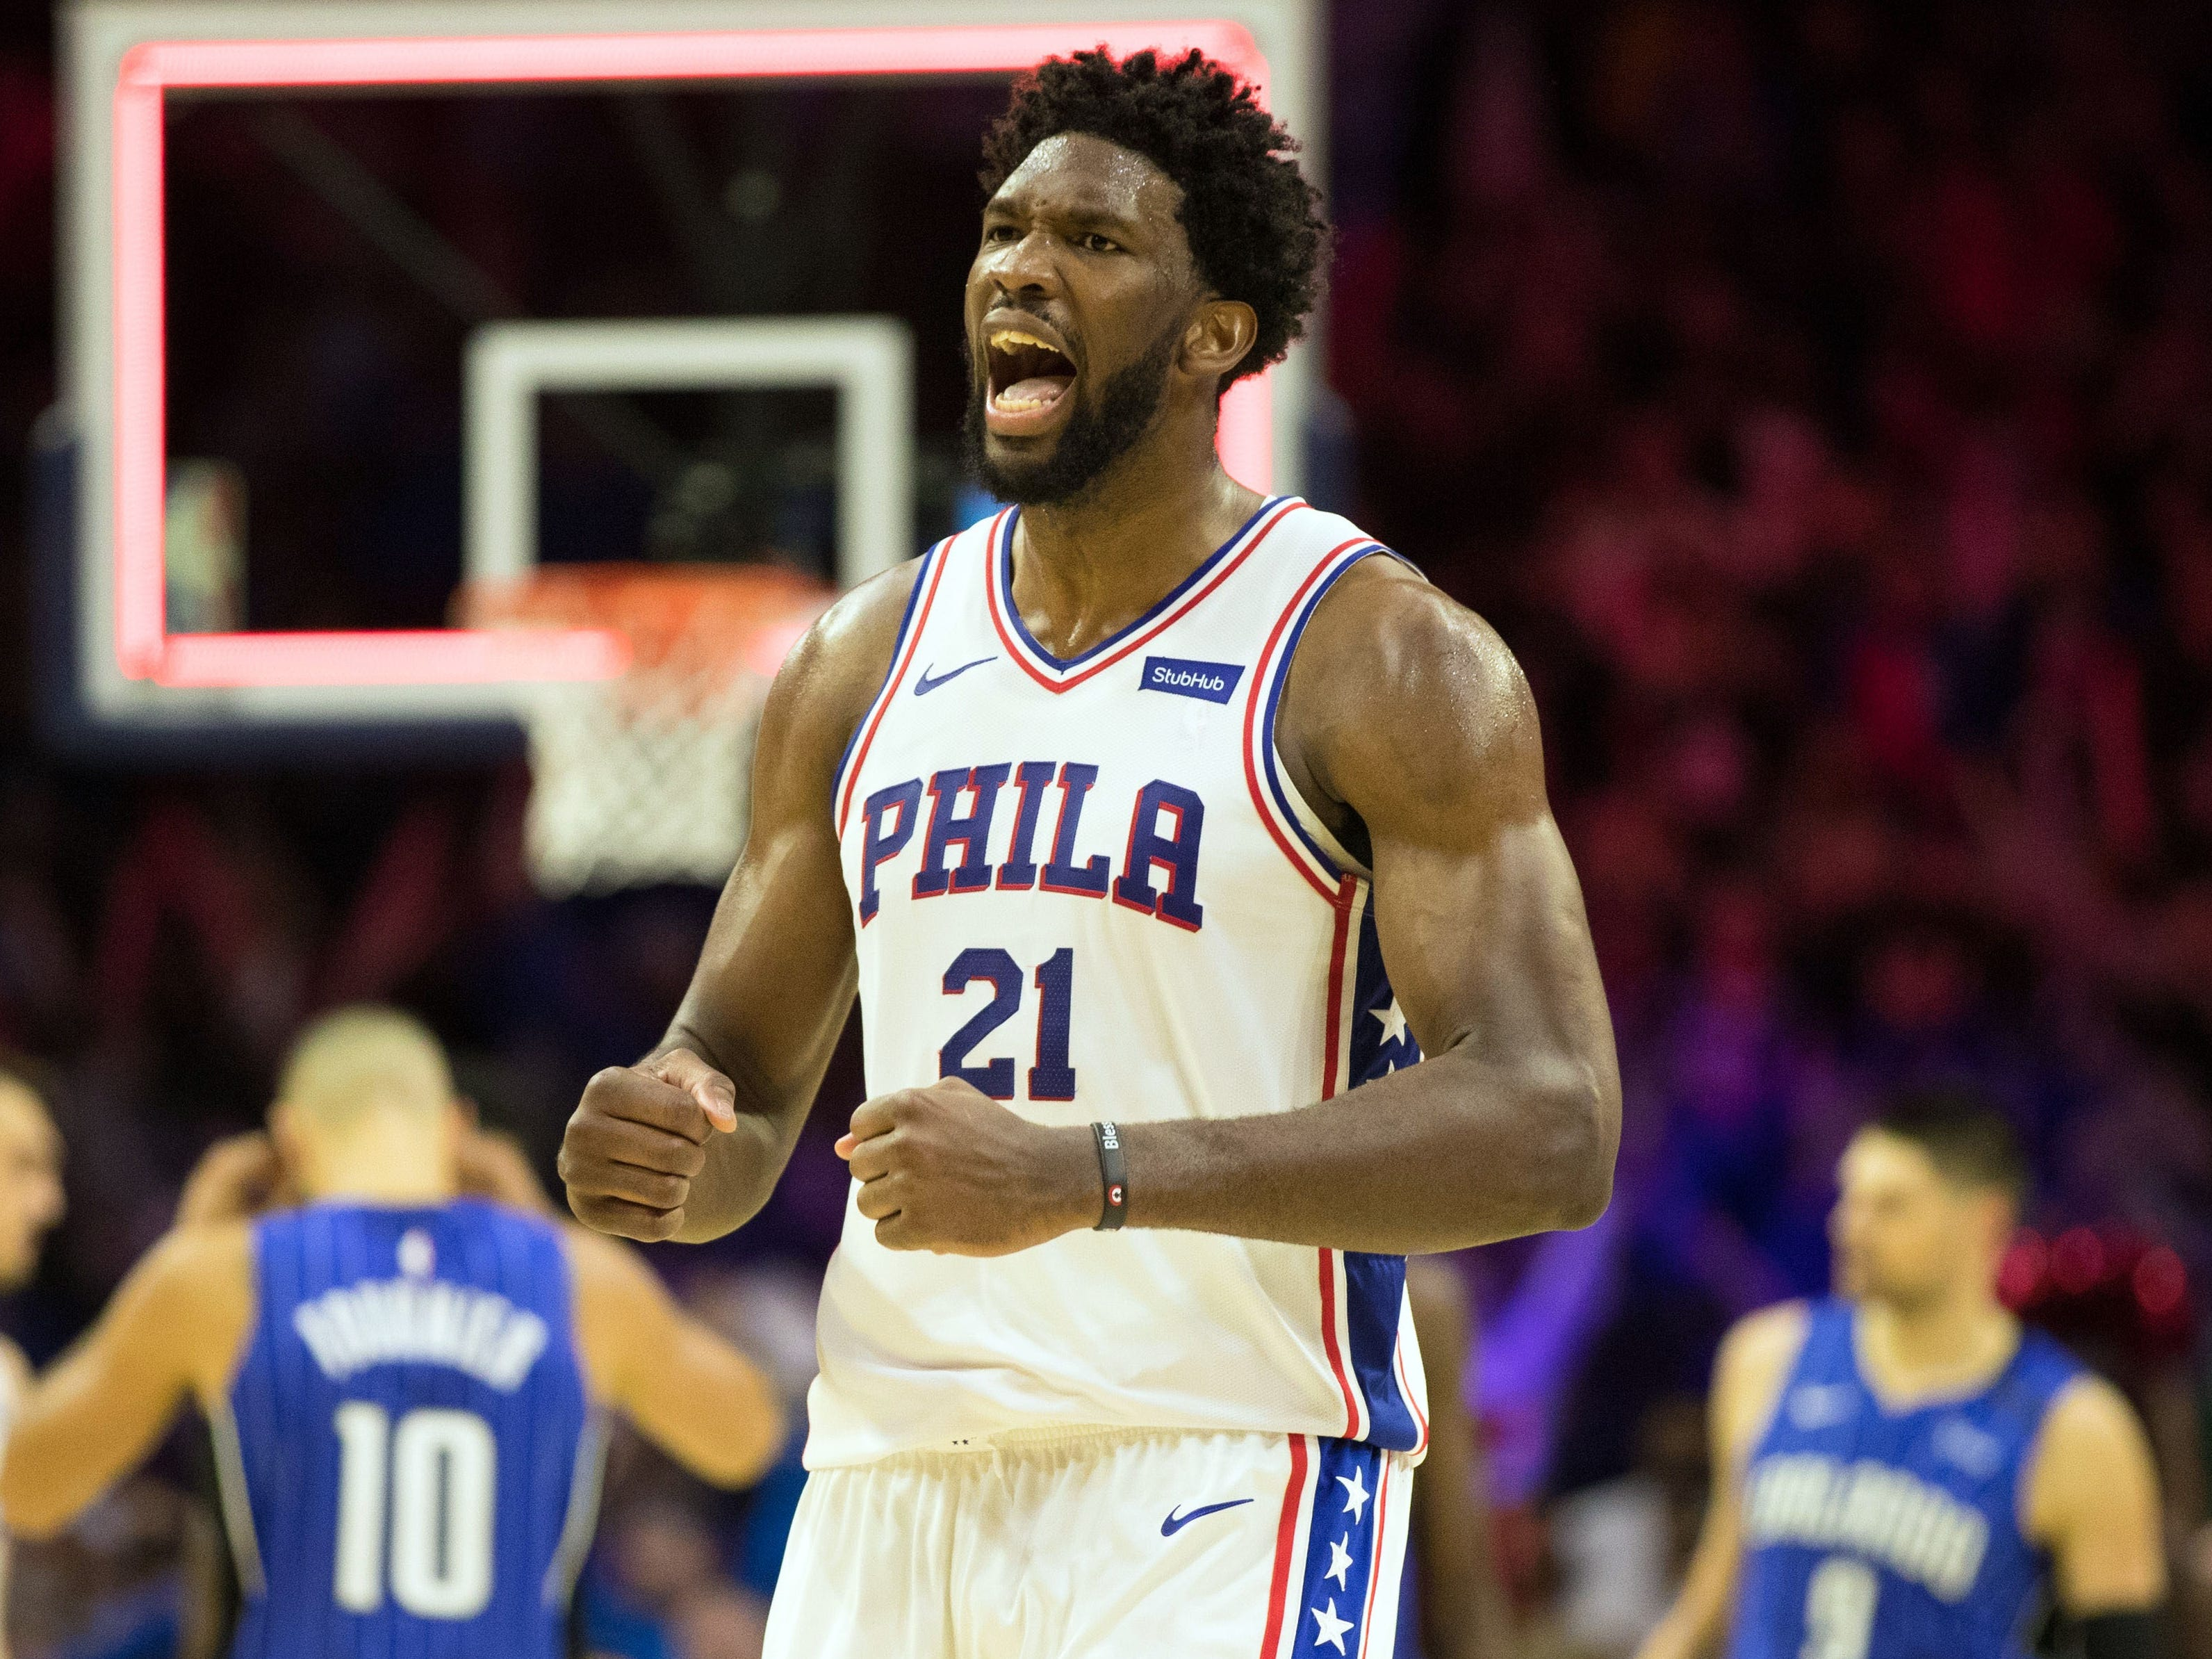 Oct. 20: Sixers center Joel Embiid was fired up after a win over the Magic.